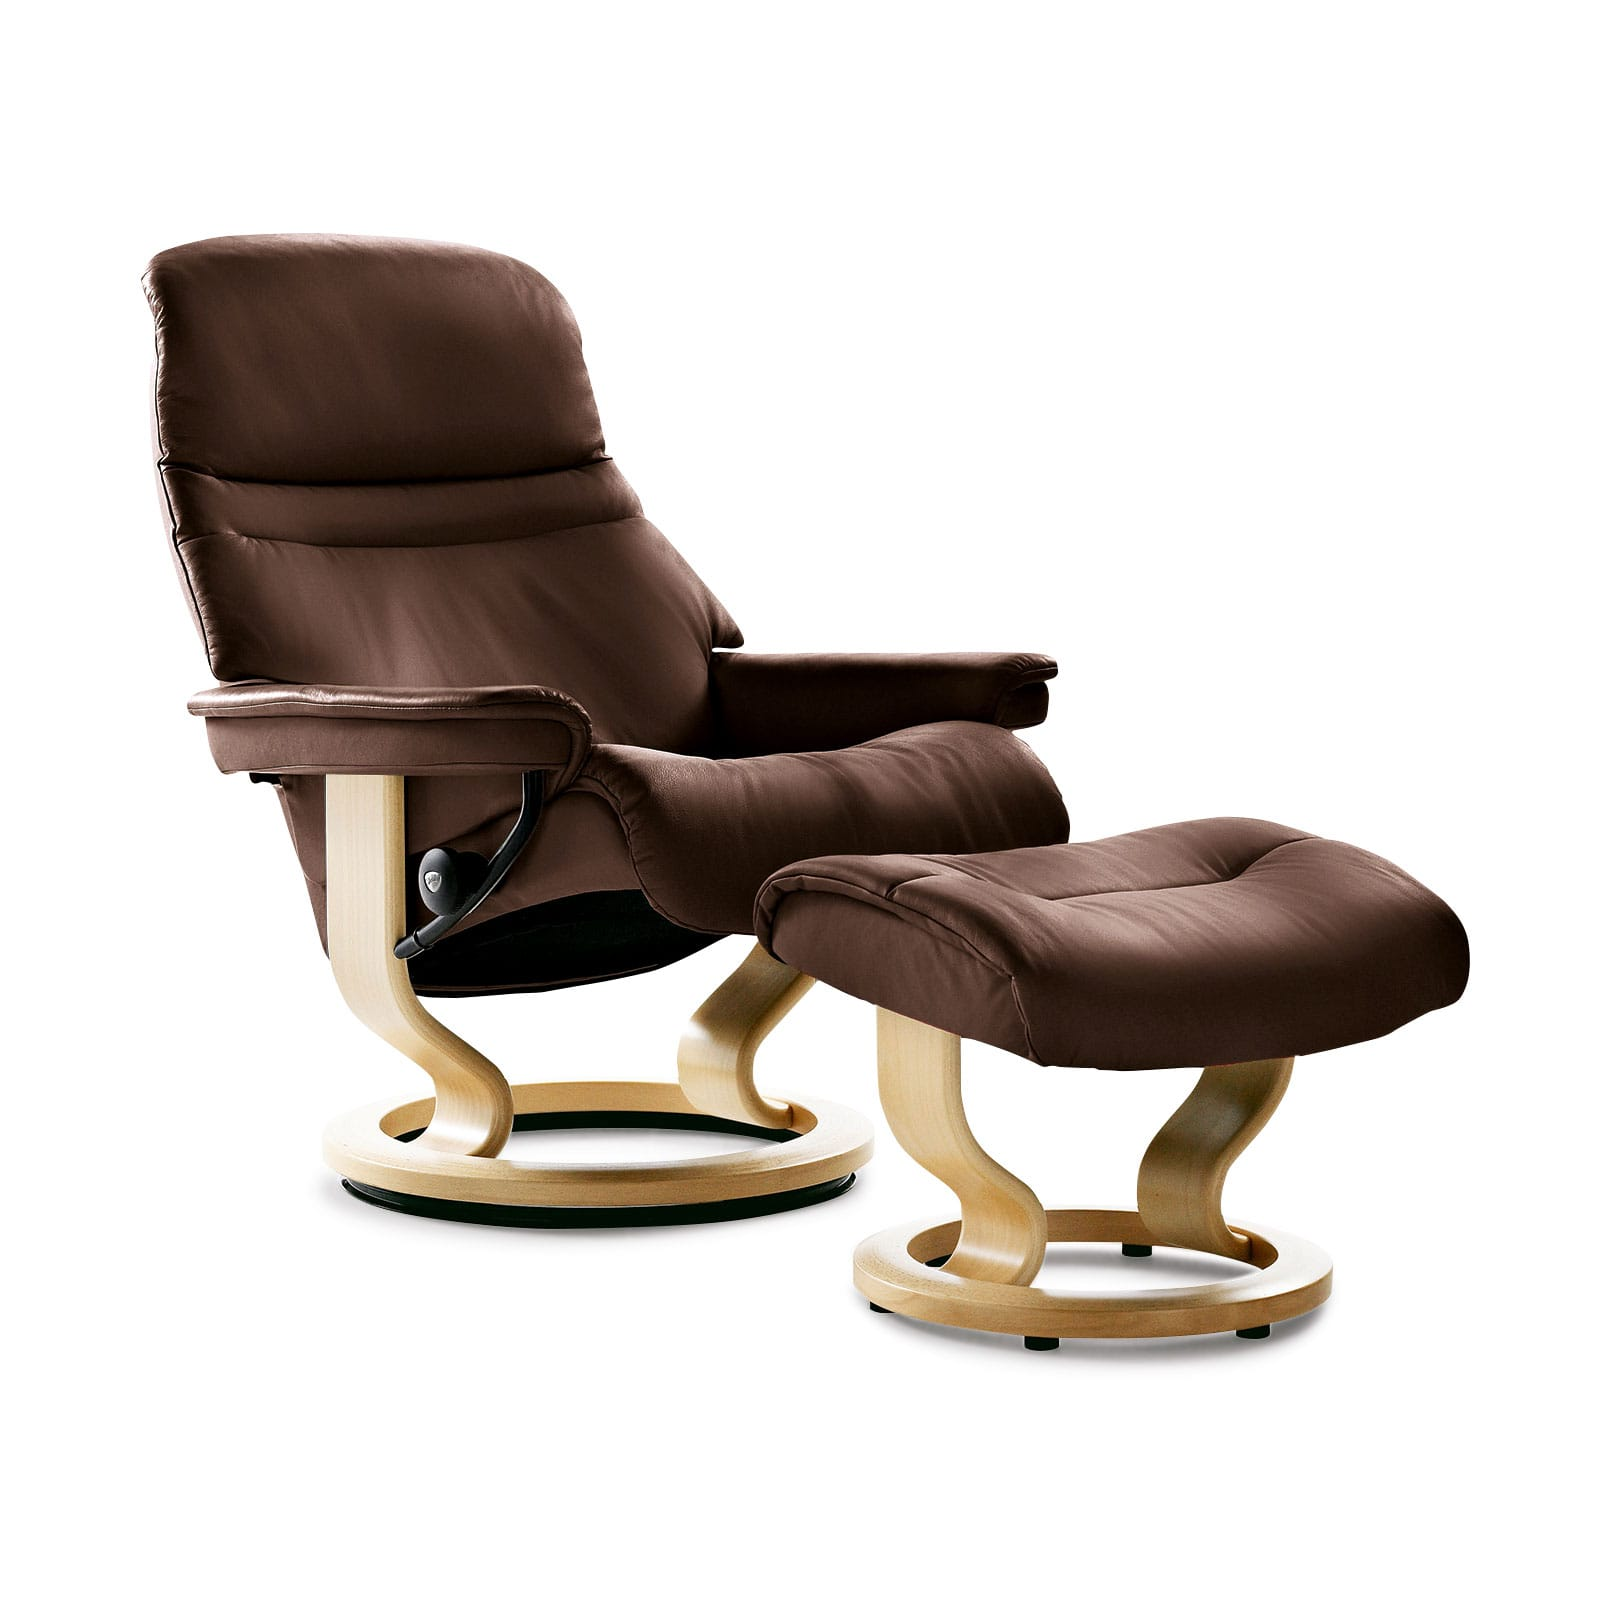 Stressless Sessel Berlin Stressless Sessel Sunrise M Batick Brown Mit Hocker